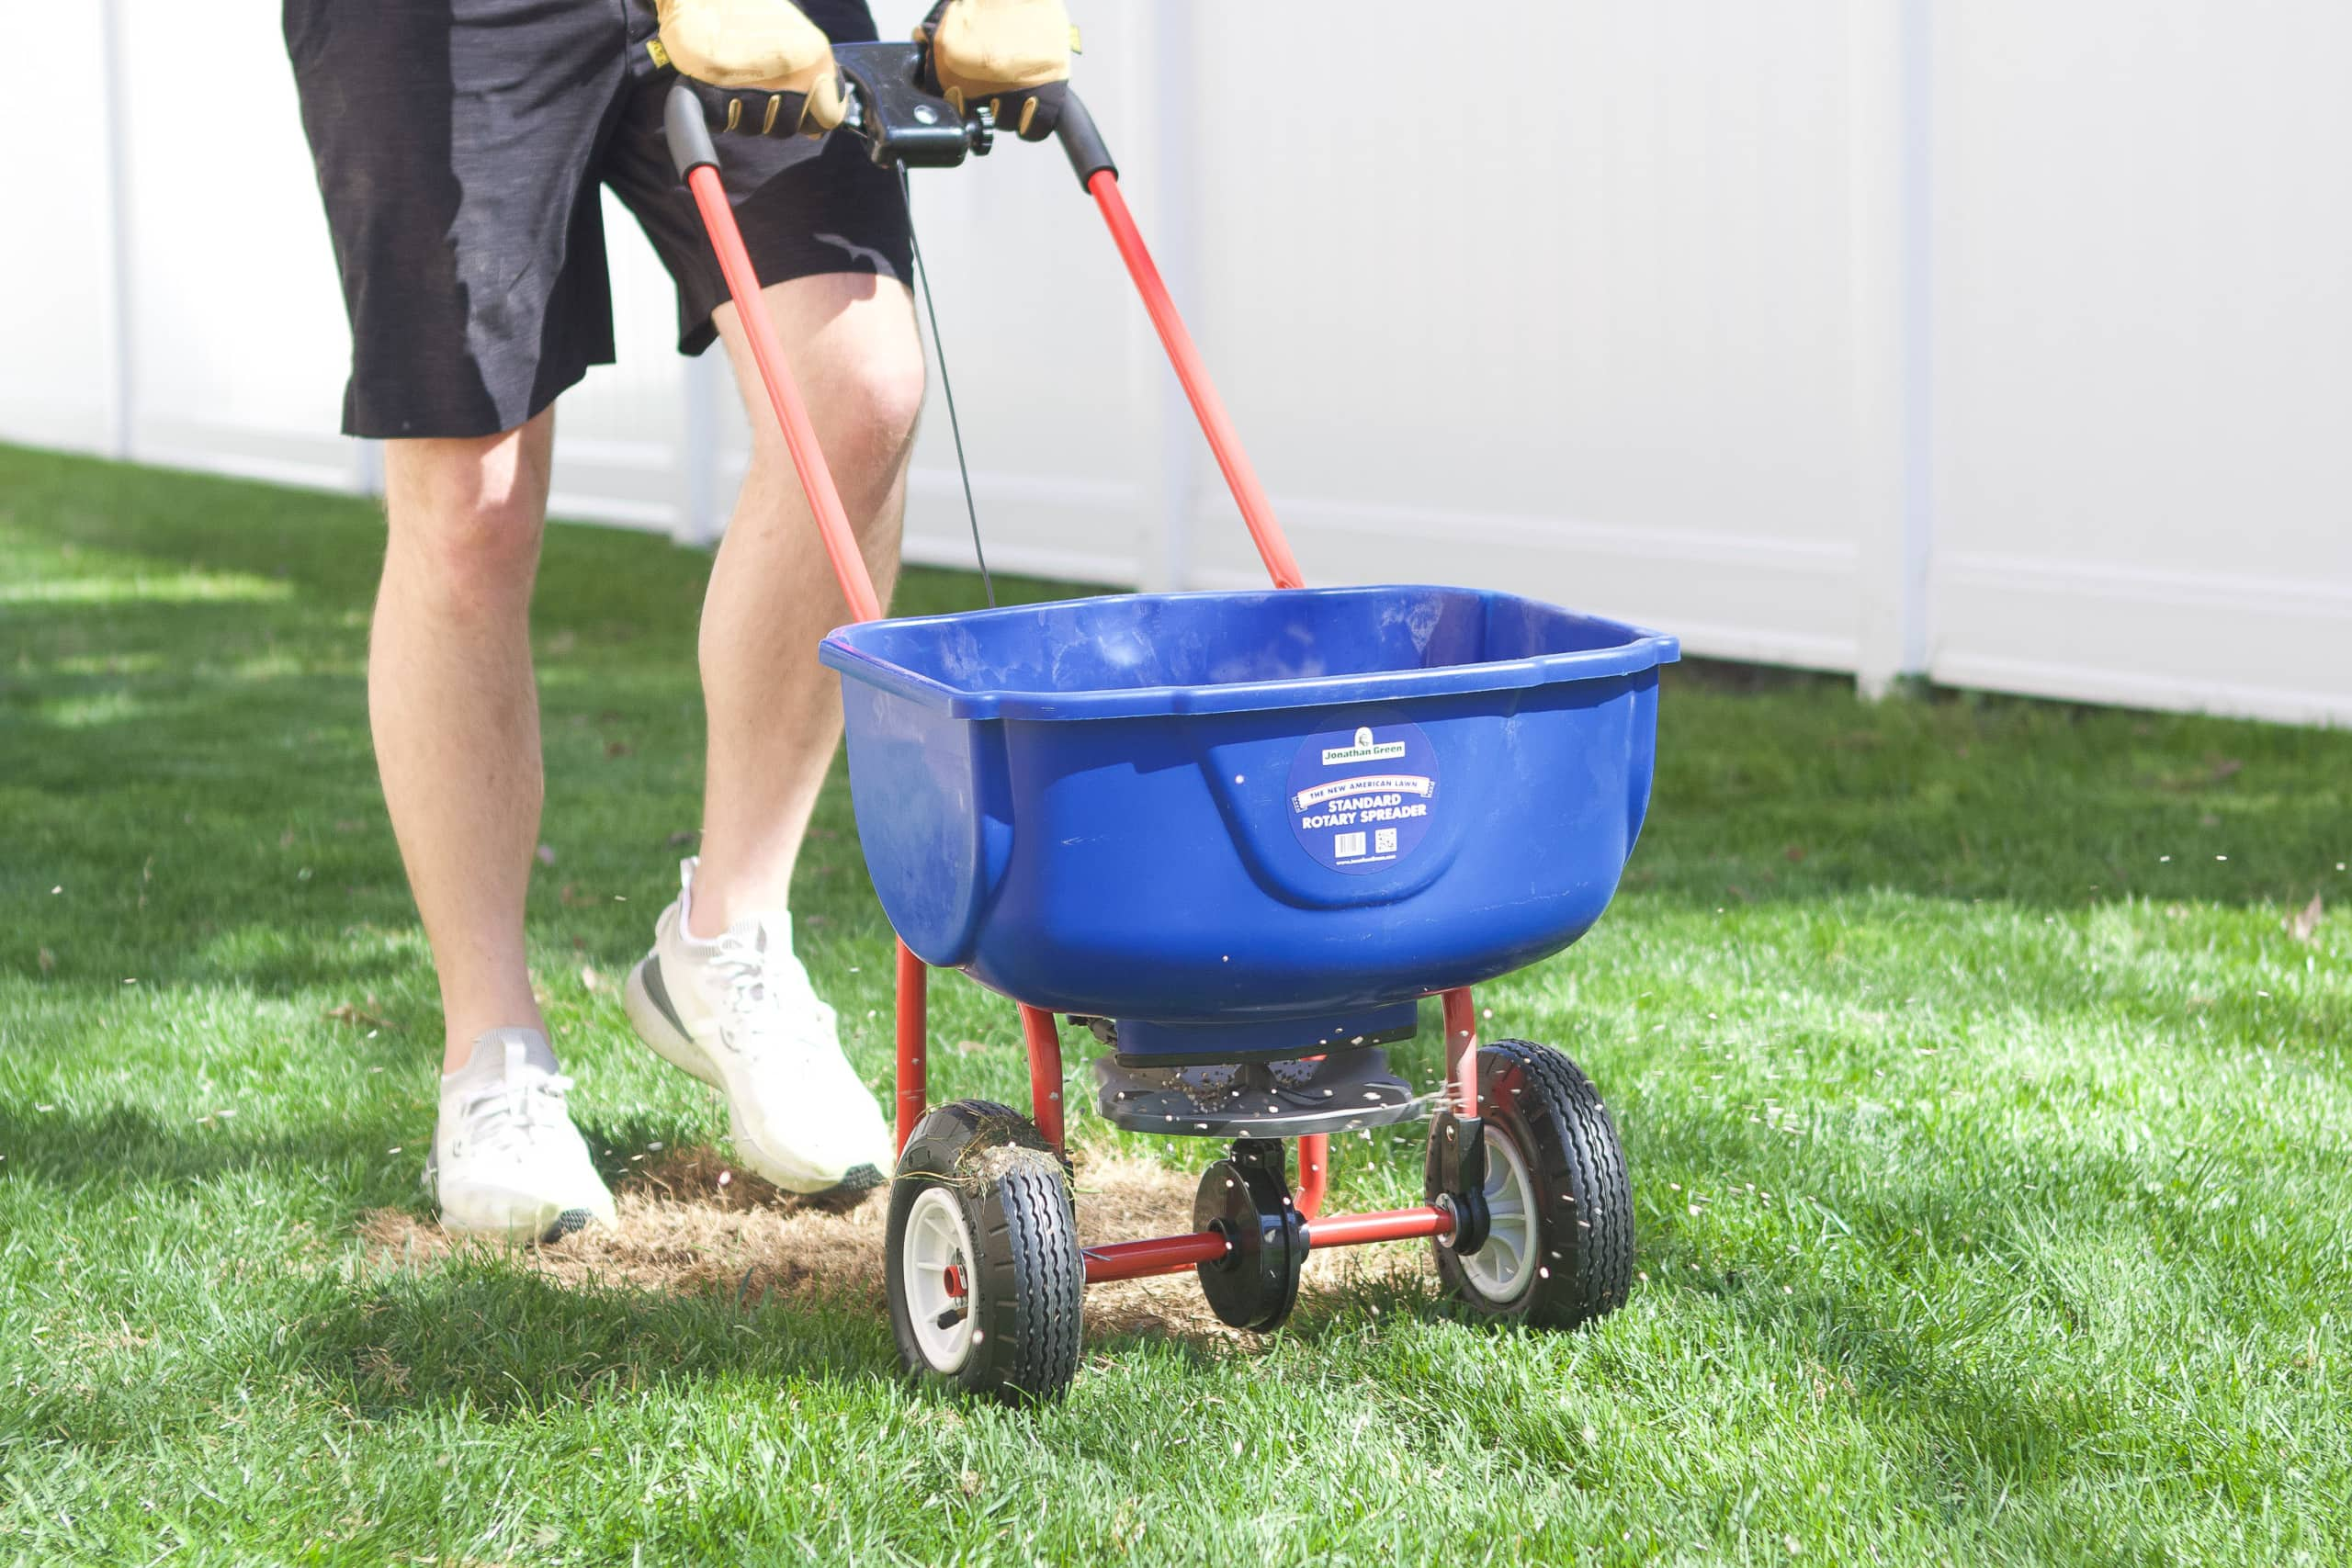 Using the spreader to apply grass seed